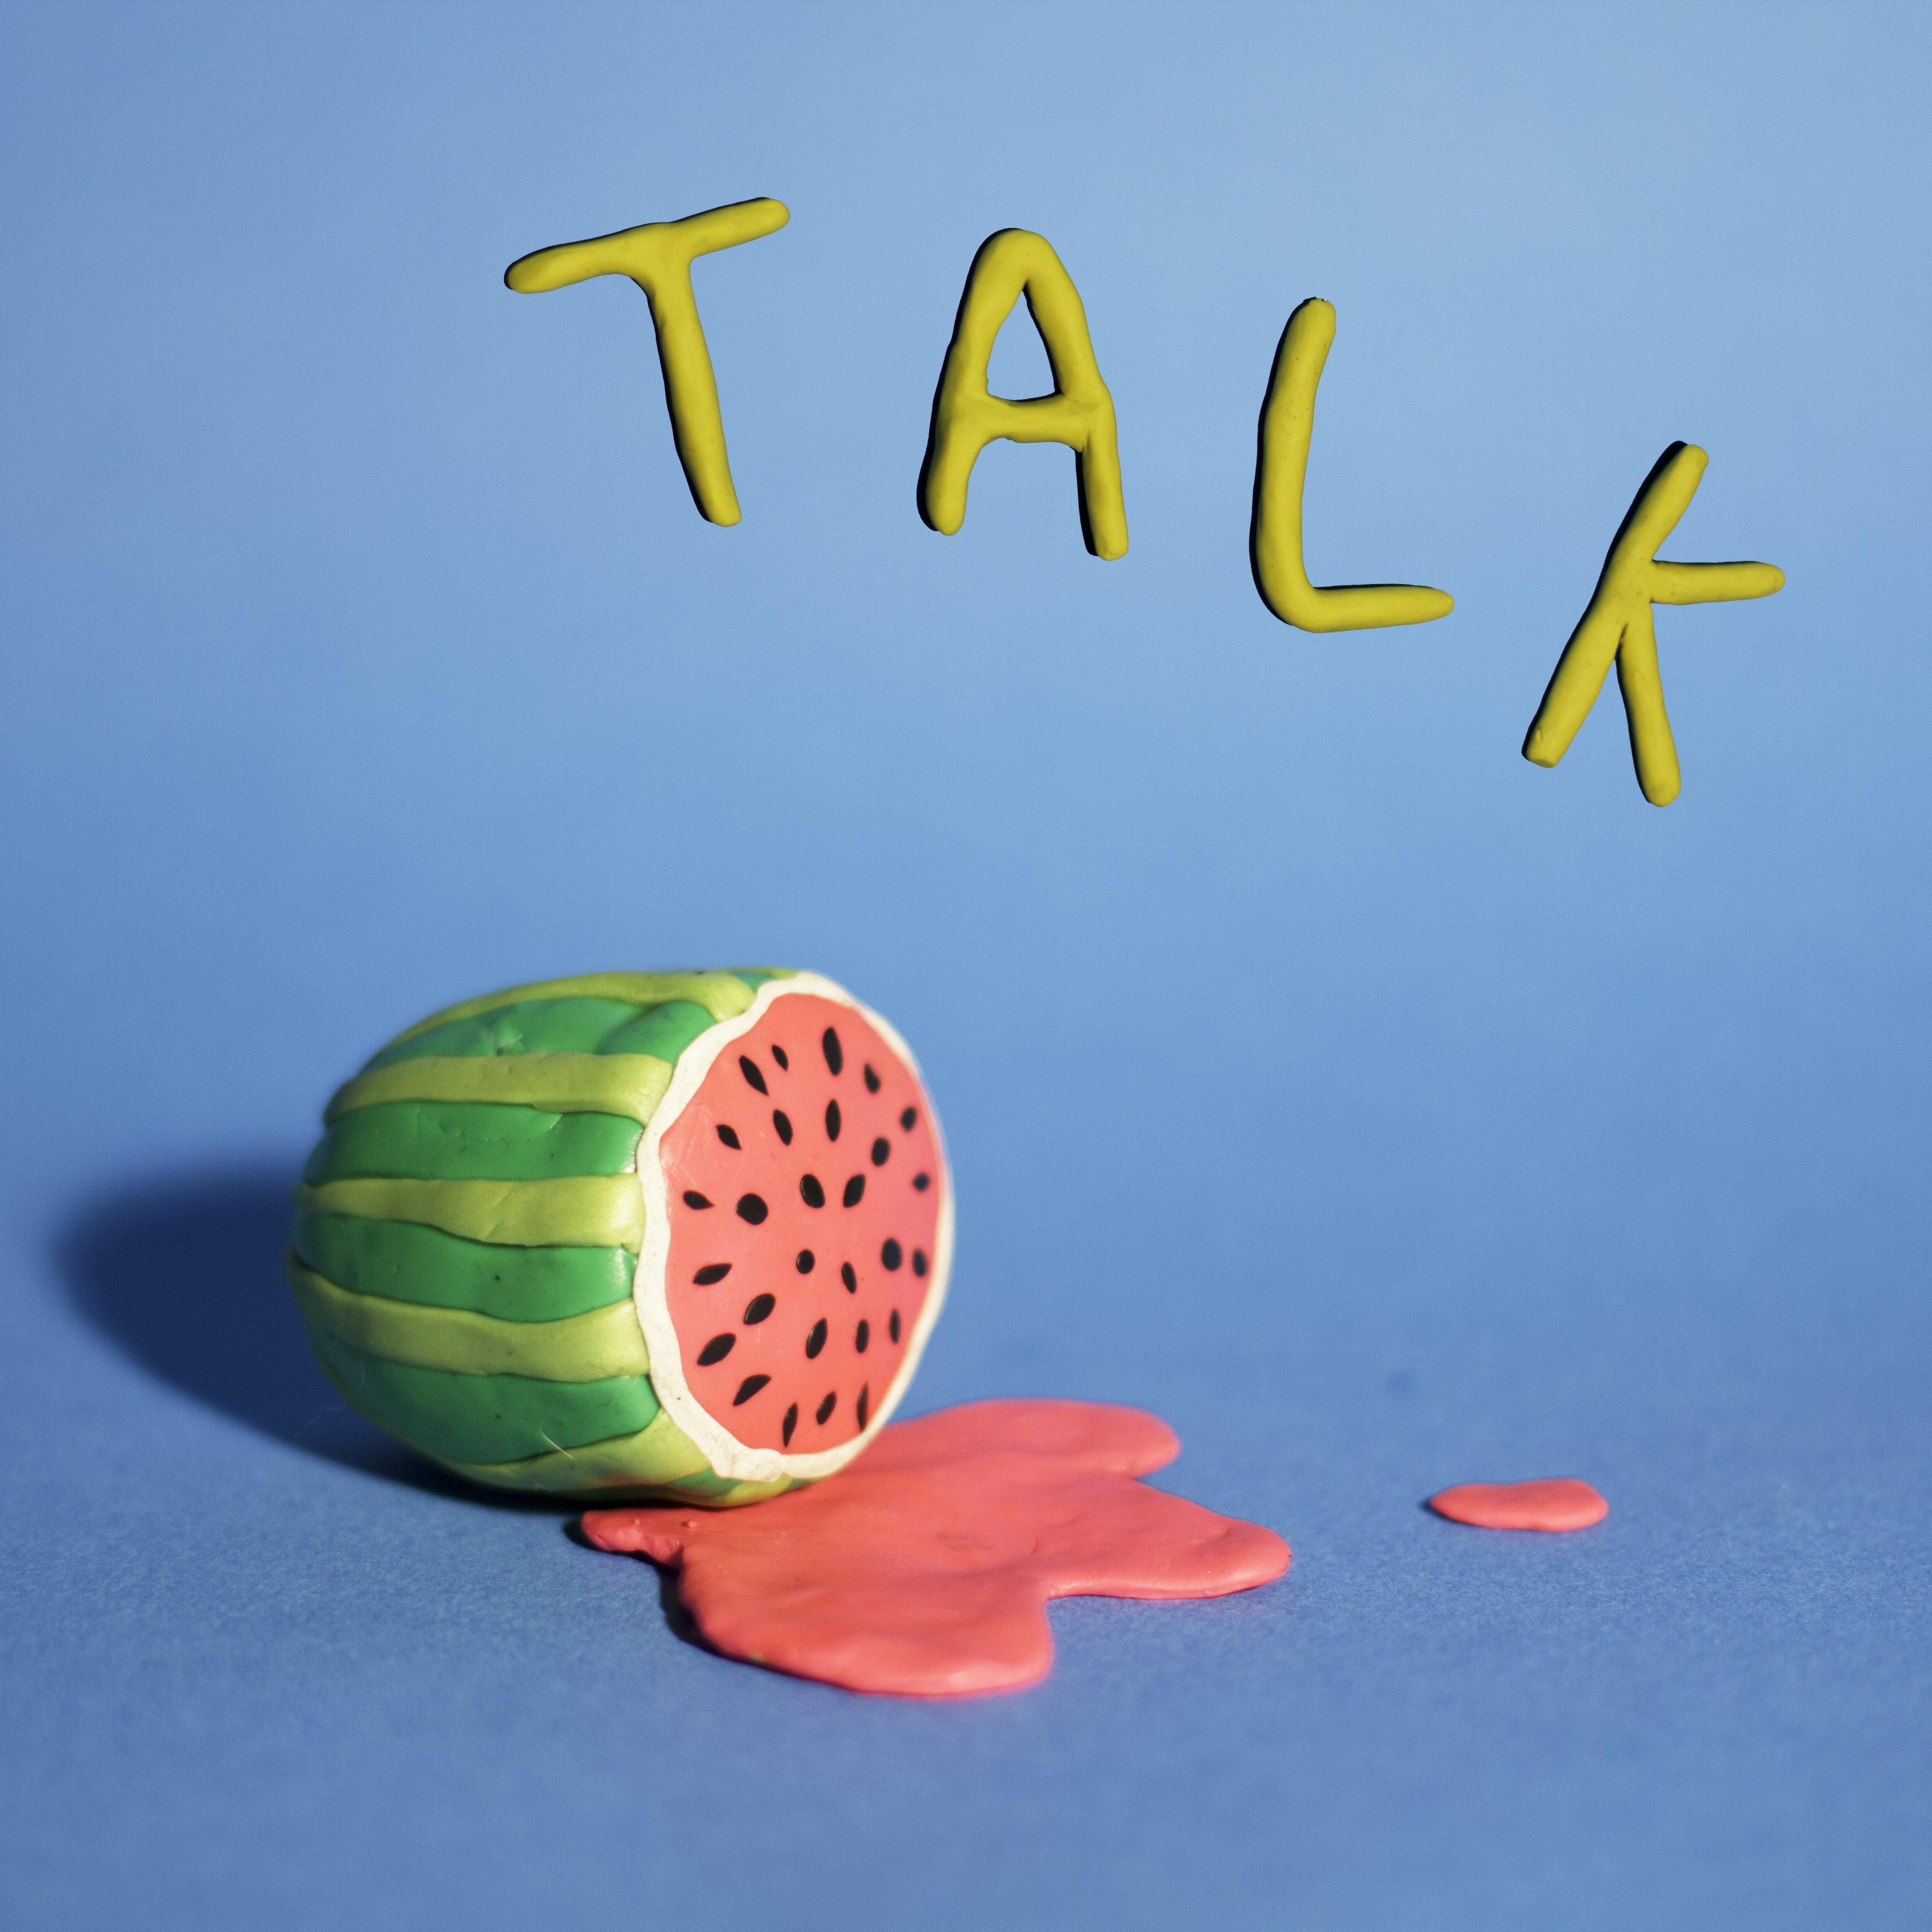 TALK Album Cover